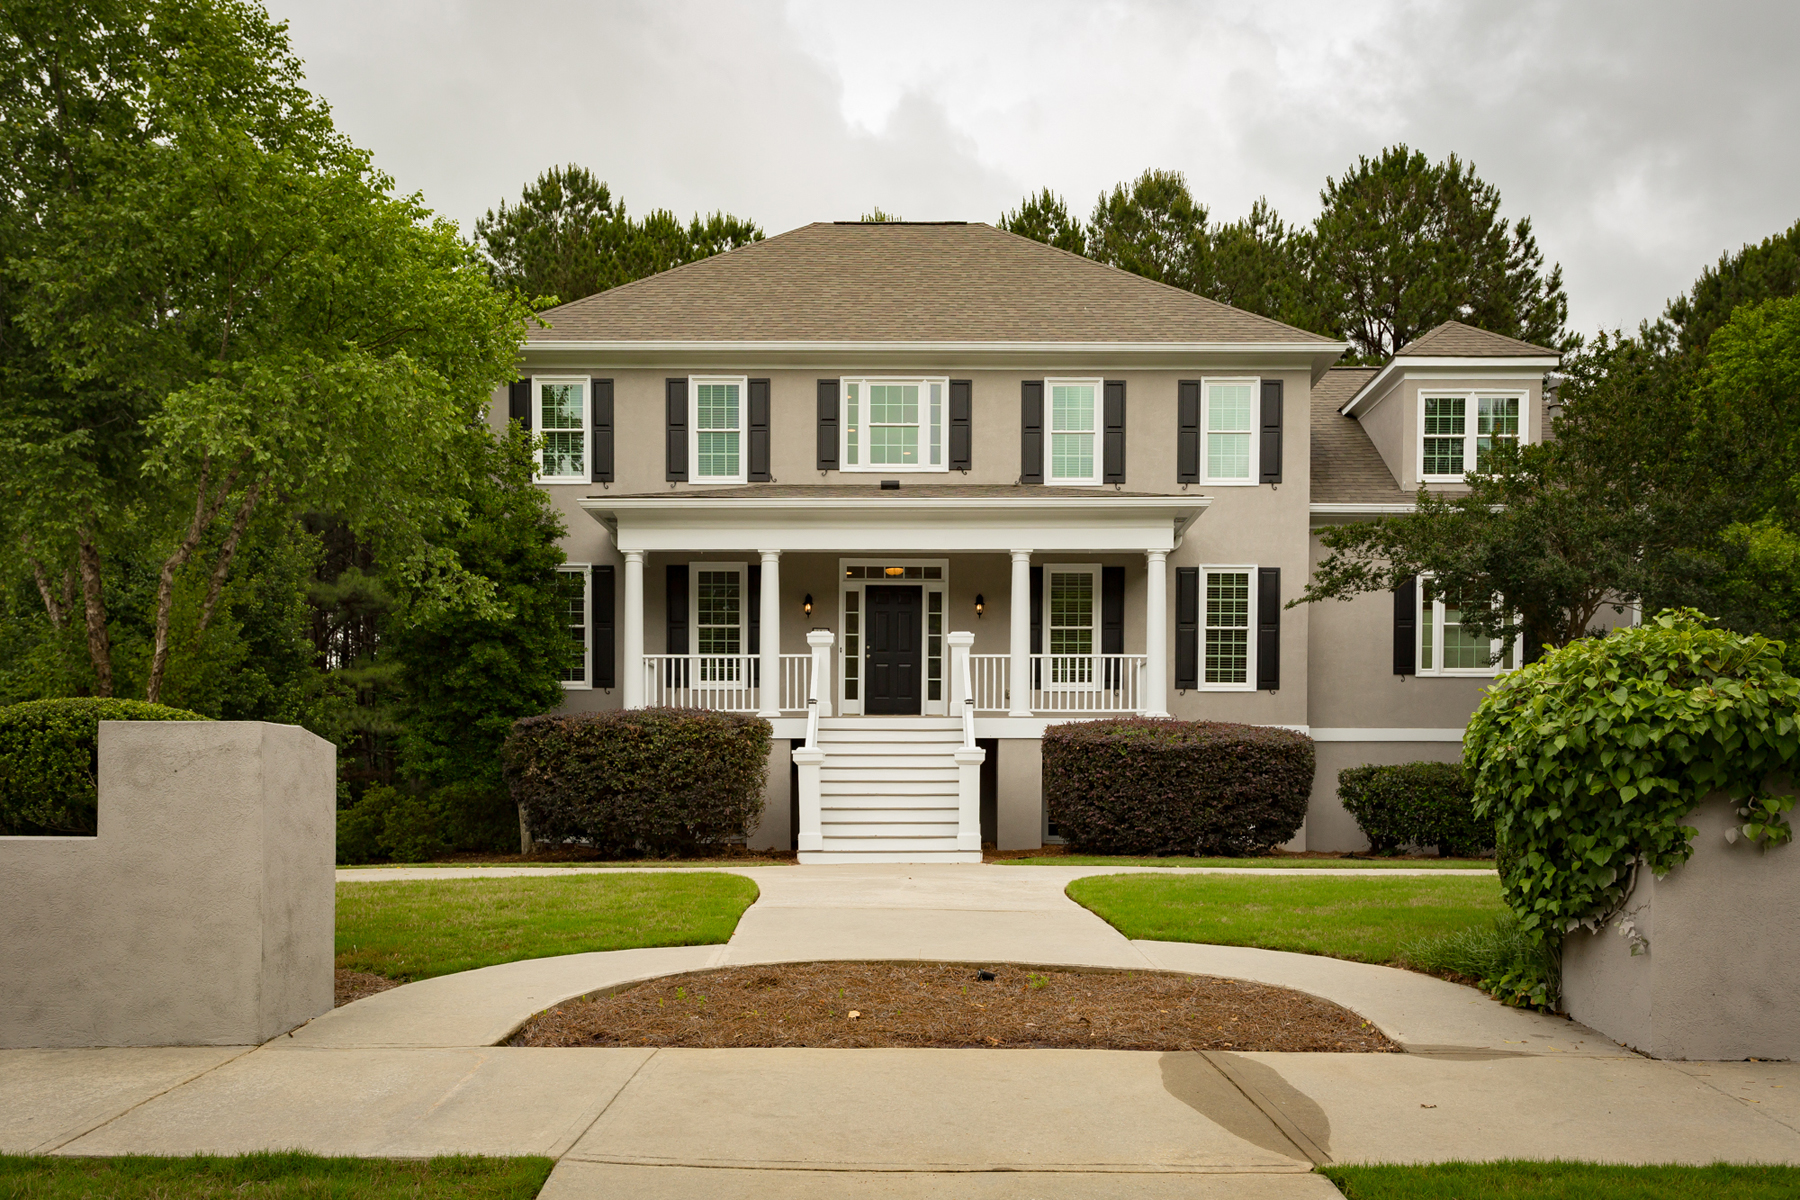 一戸建て のために 売買 アット Recently Updated And Move-In Ready Highgrove Home With Master On Main 275 Old Ivy Fayetteville, ジョージア 30215 アメリカ合衆国